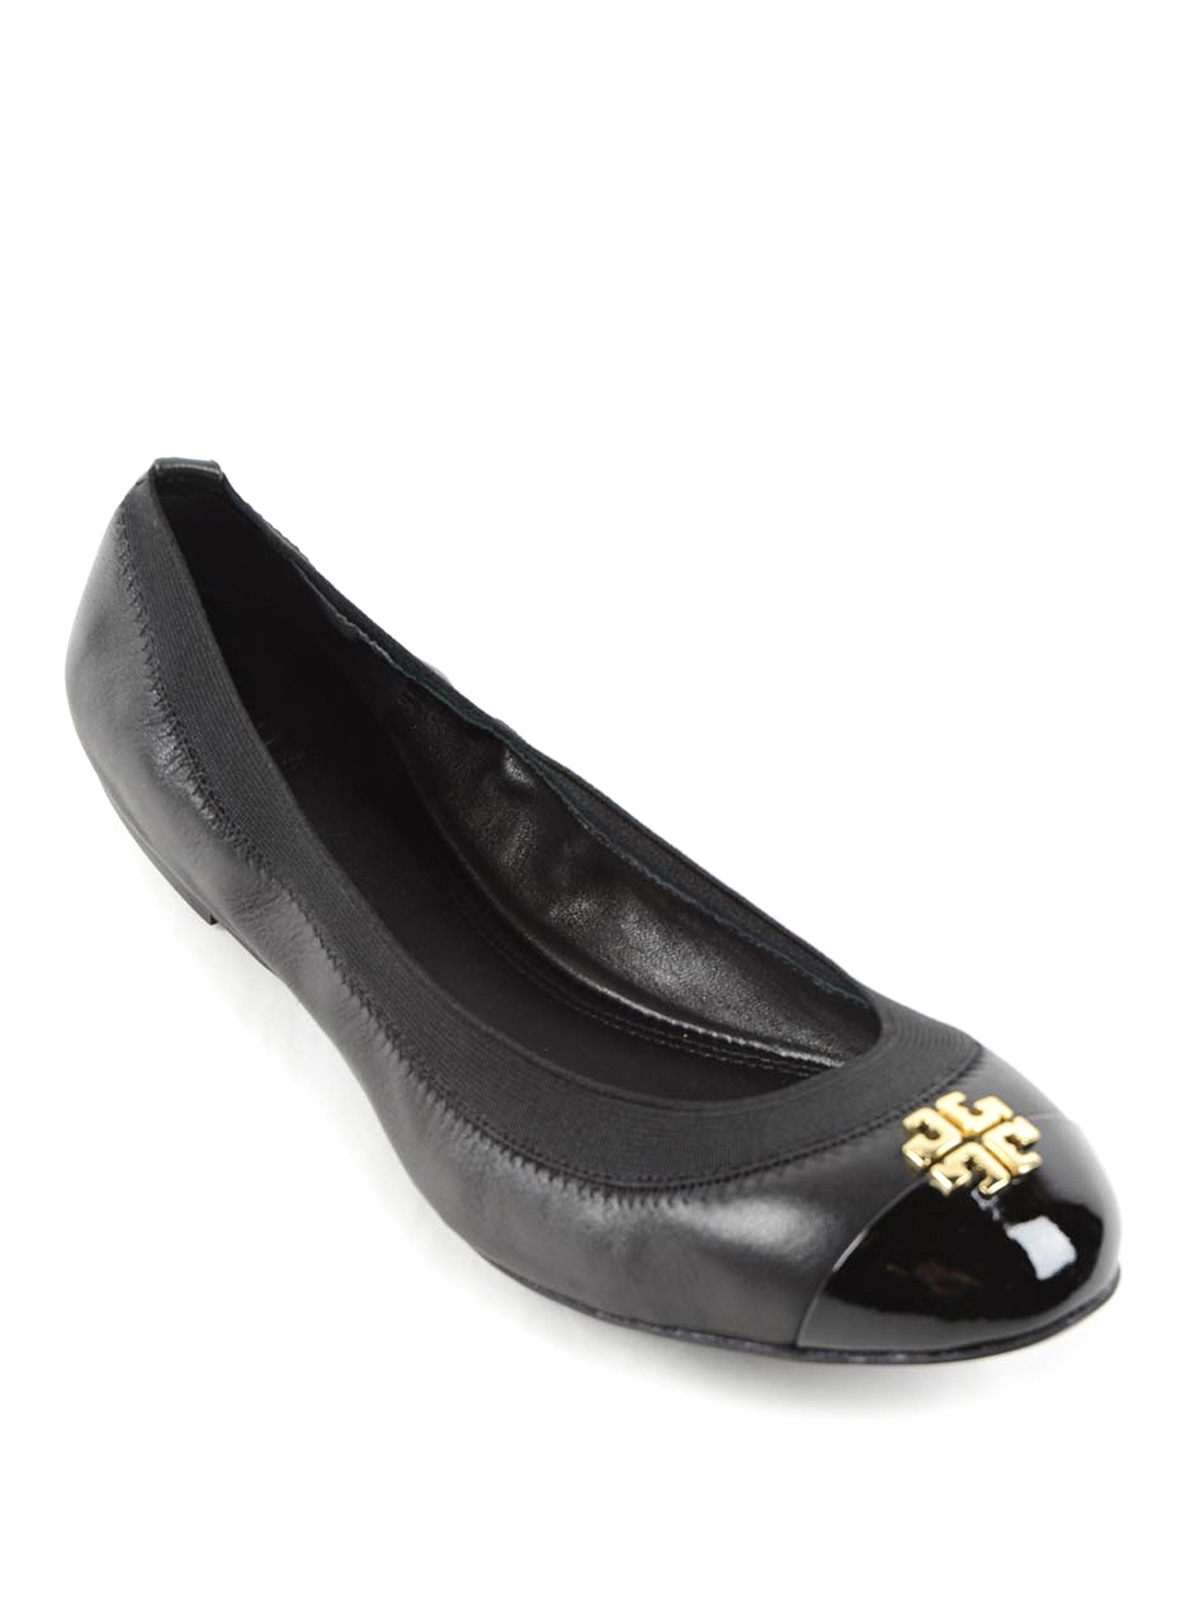 7a8a66c81 TORY BURCH: flat shoes online - Patent leather toe Jolie ballerinas